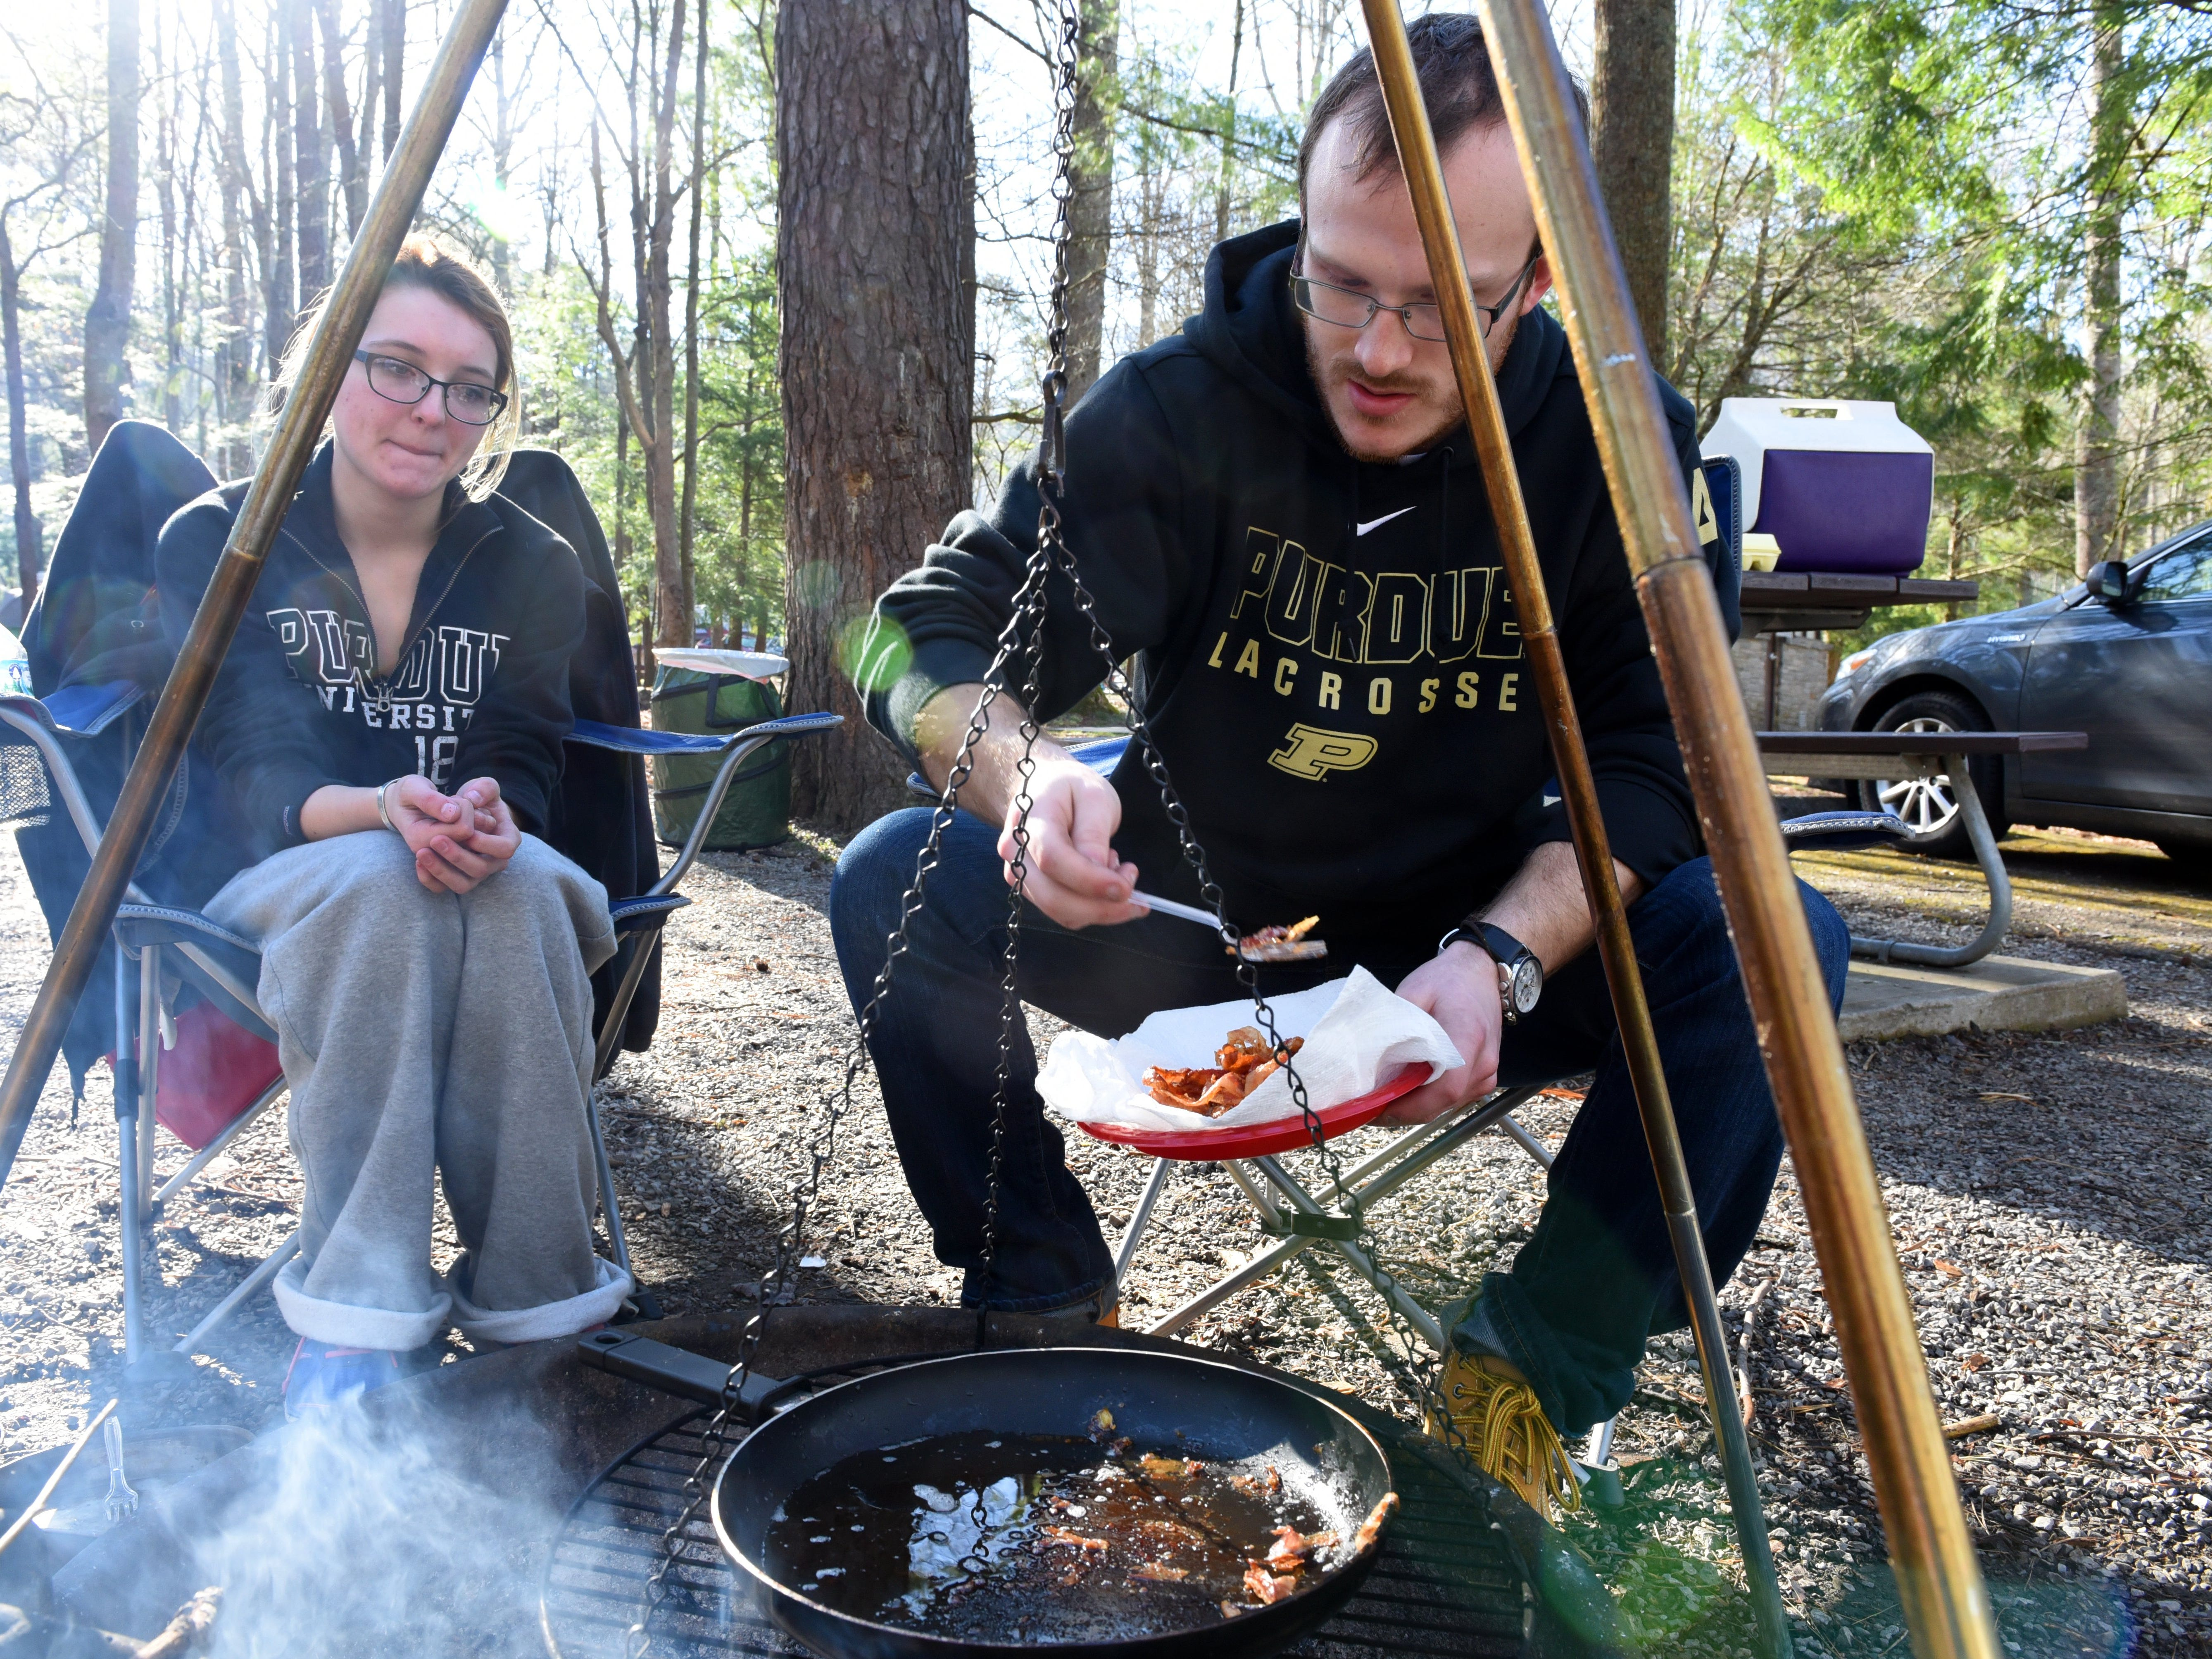 """Conner Noel and Jackie Hall enjoying the last camping space in the Cades Cove campgrounds Tuesday, Mar. 15, 2016. Hall said, """"It's spring break and our first time to the Smoky mountains,"""" said Hall and adding, """"We are here until Friday to enjoy the mountains."""" Great Smoky Mountains National Park announced their opening schedule for 2016.   (MICHAEL PATRICK/NEWS SENTINEL)"""